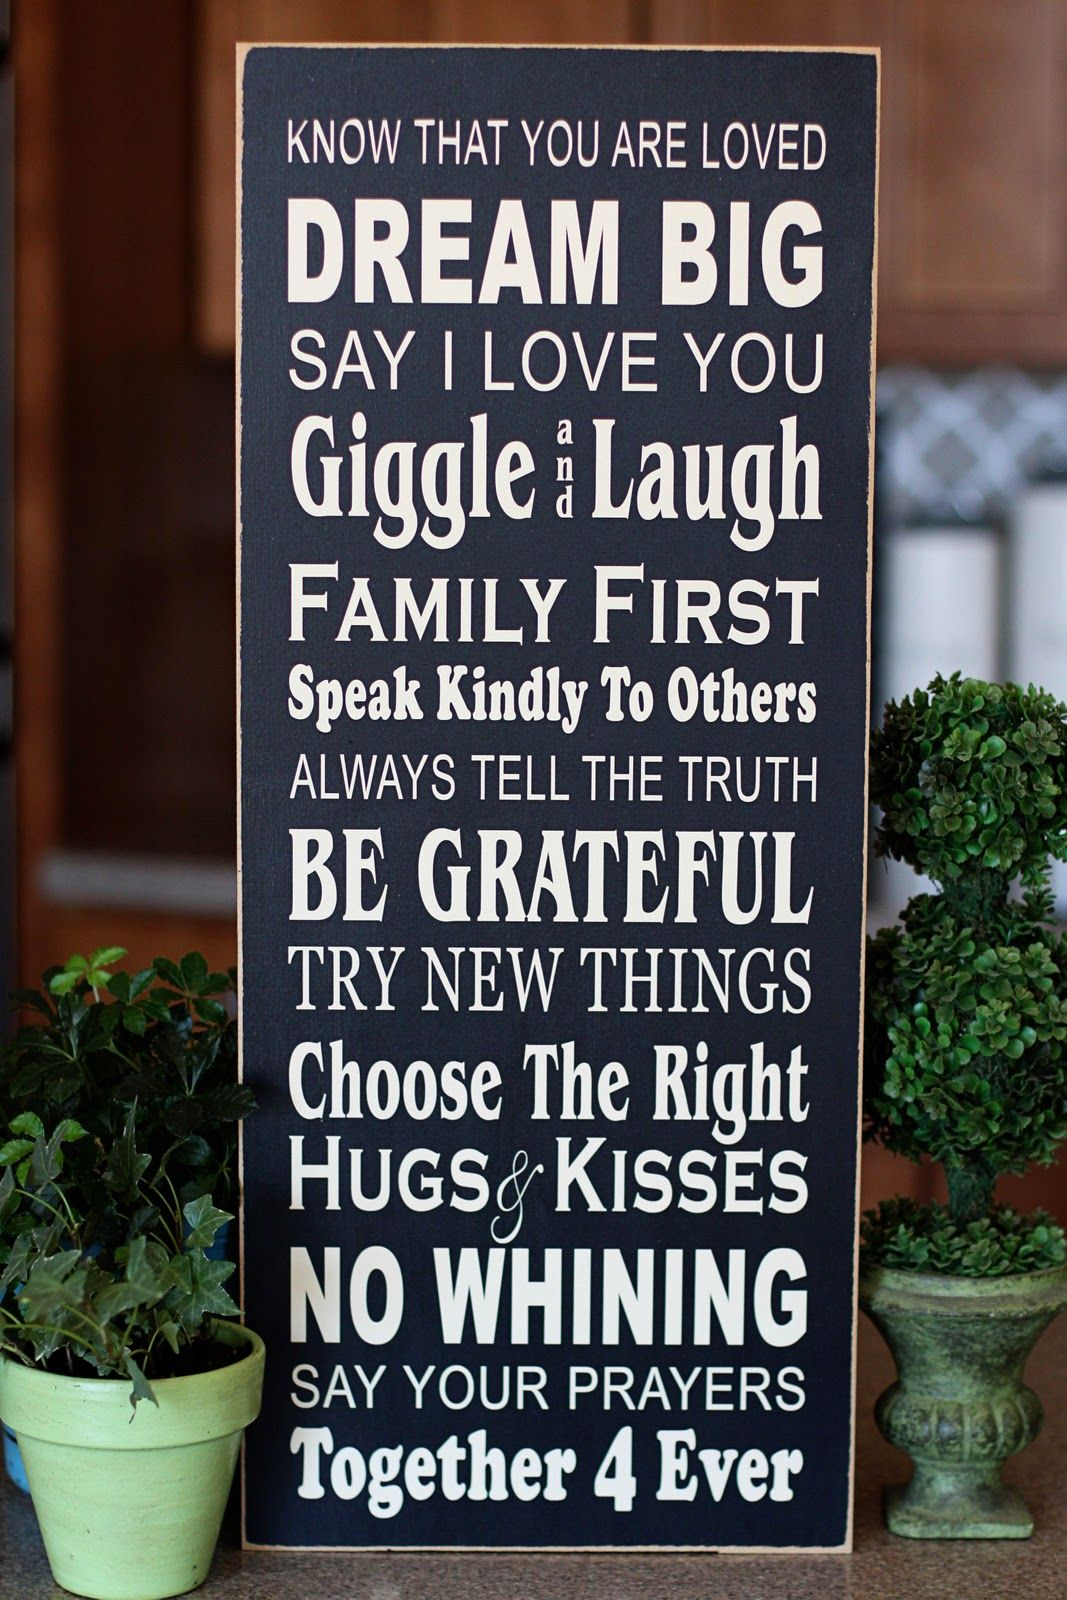 """""""Know that you are loved. Dream big. Say I love you. Giggle and laugh. Family first. Speak kindly to others. Always tell the truth. Be grateful. Try new things. Choose the right. Hugs and kisses. No whining. Say your prayers. Together forever."""